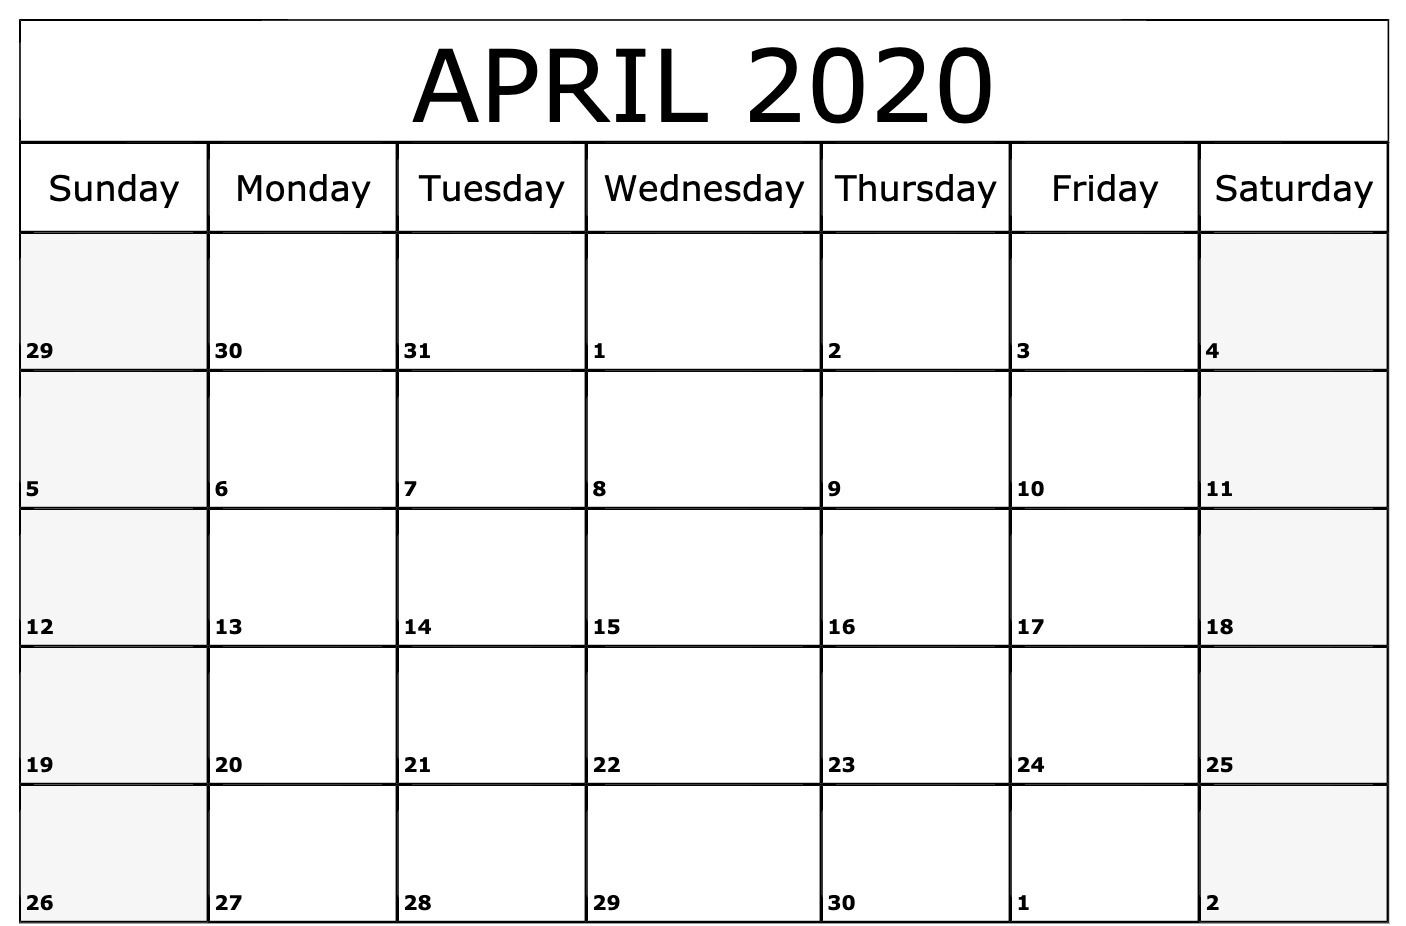 Full Moon Calendar for April 2020